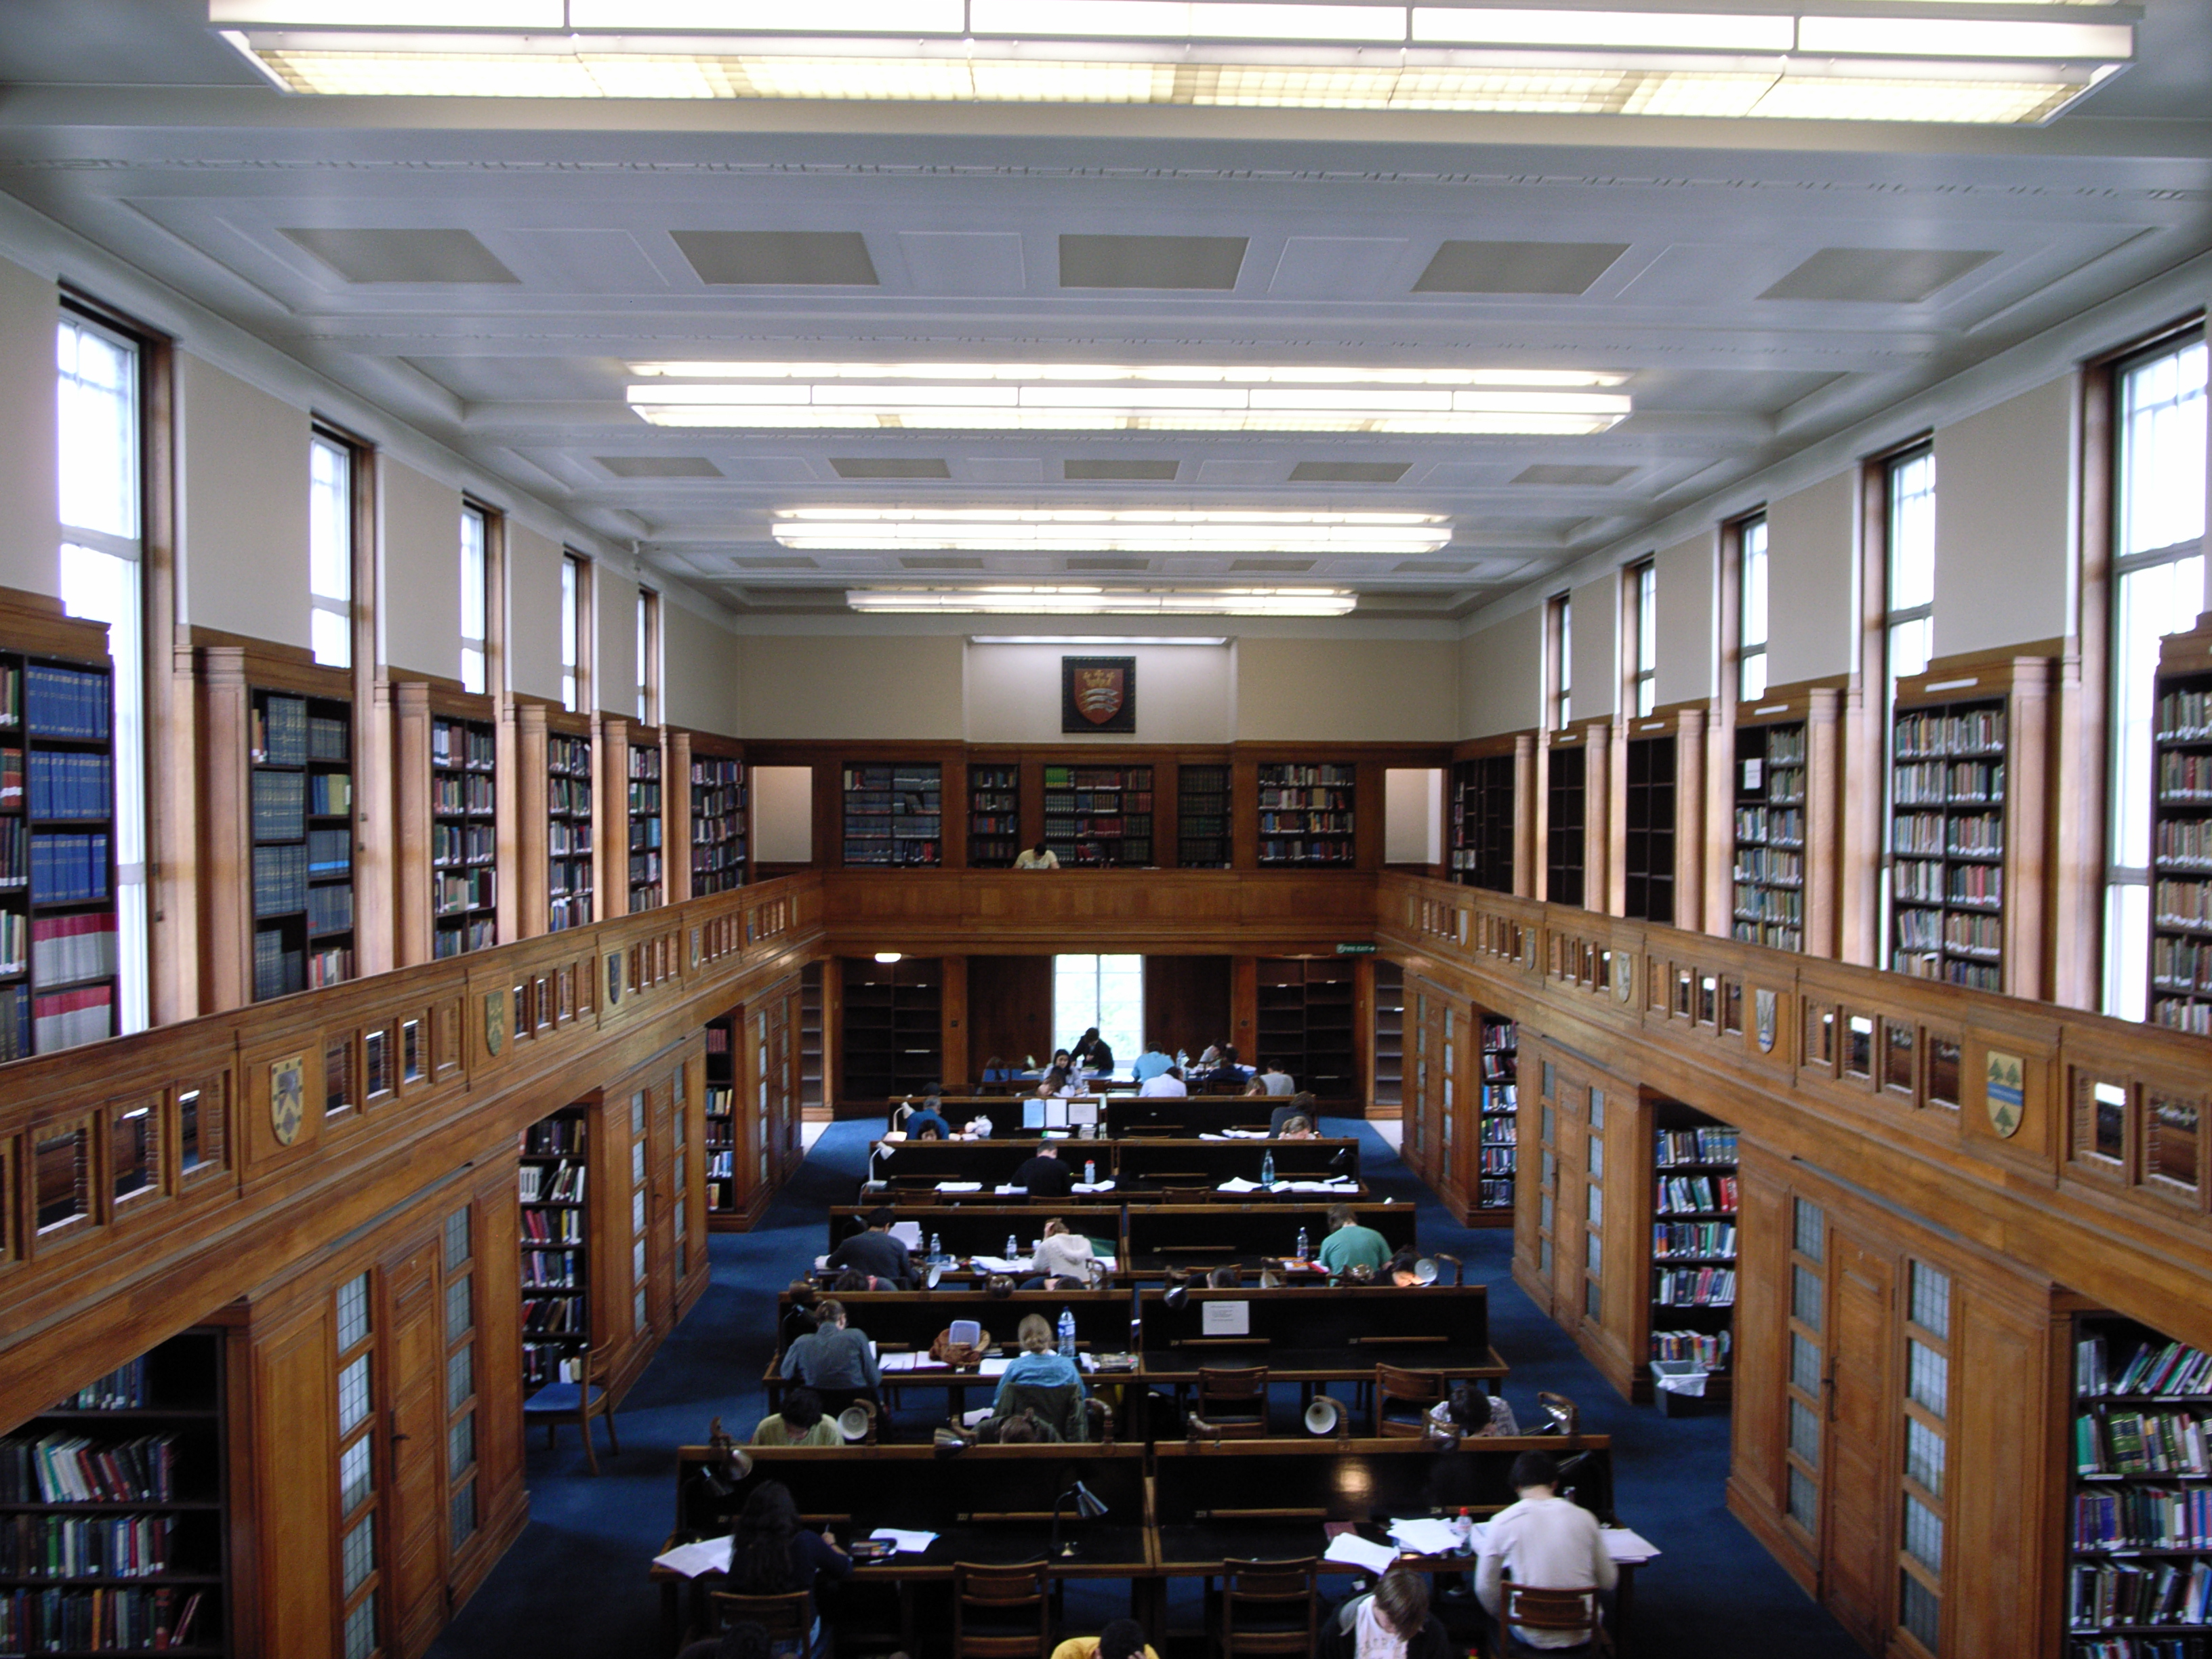 File:Senate House Library, University of London.jpg ...